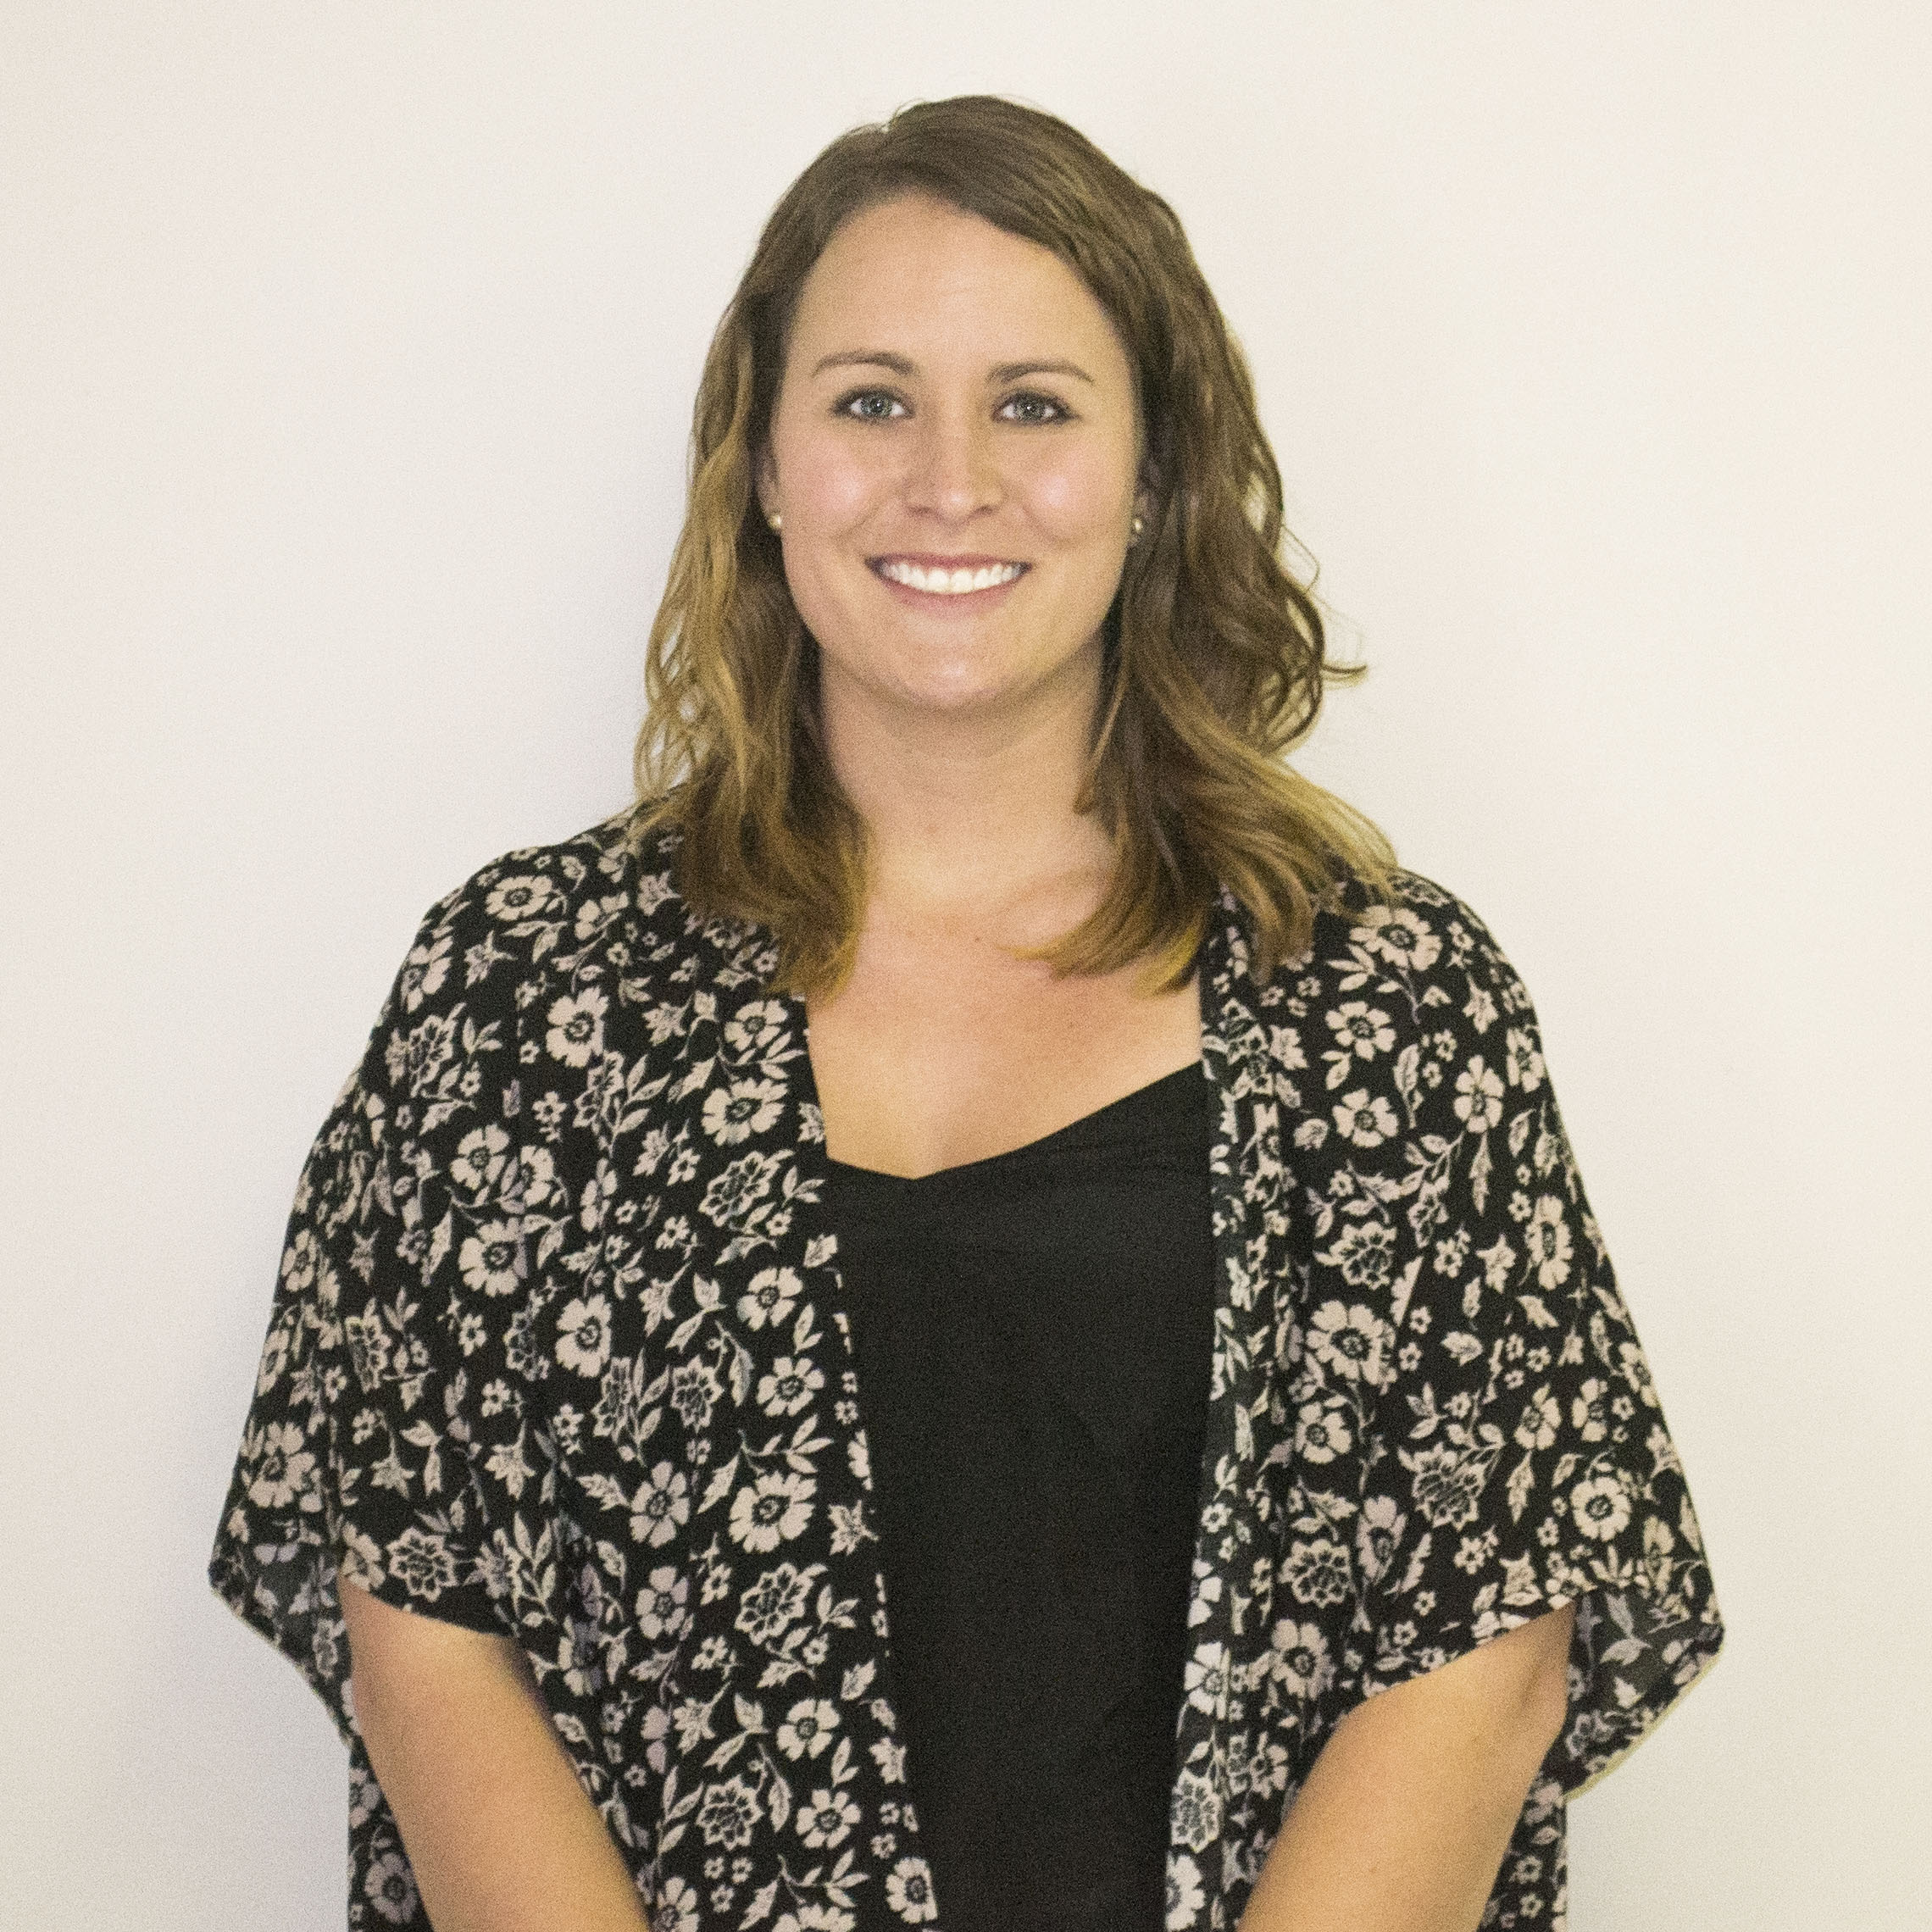 BETHANY burch - Business analyst